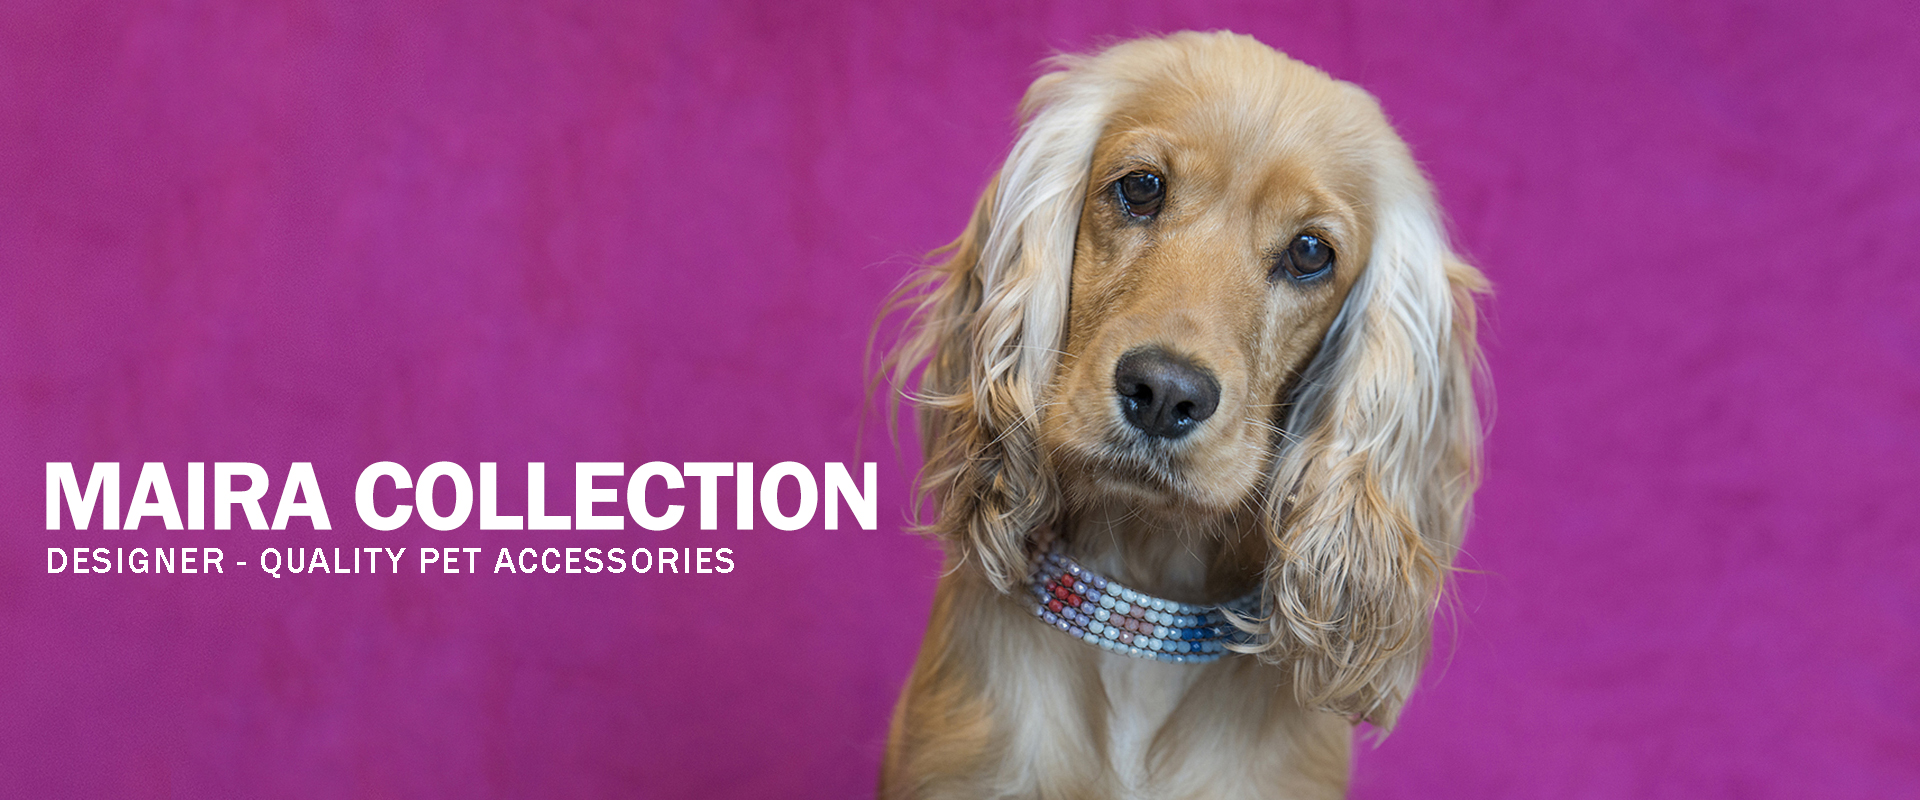 Maira Collection   Designer-quality pet accessories by zikos